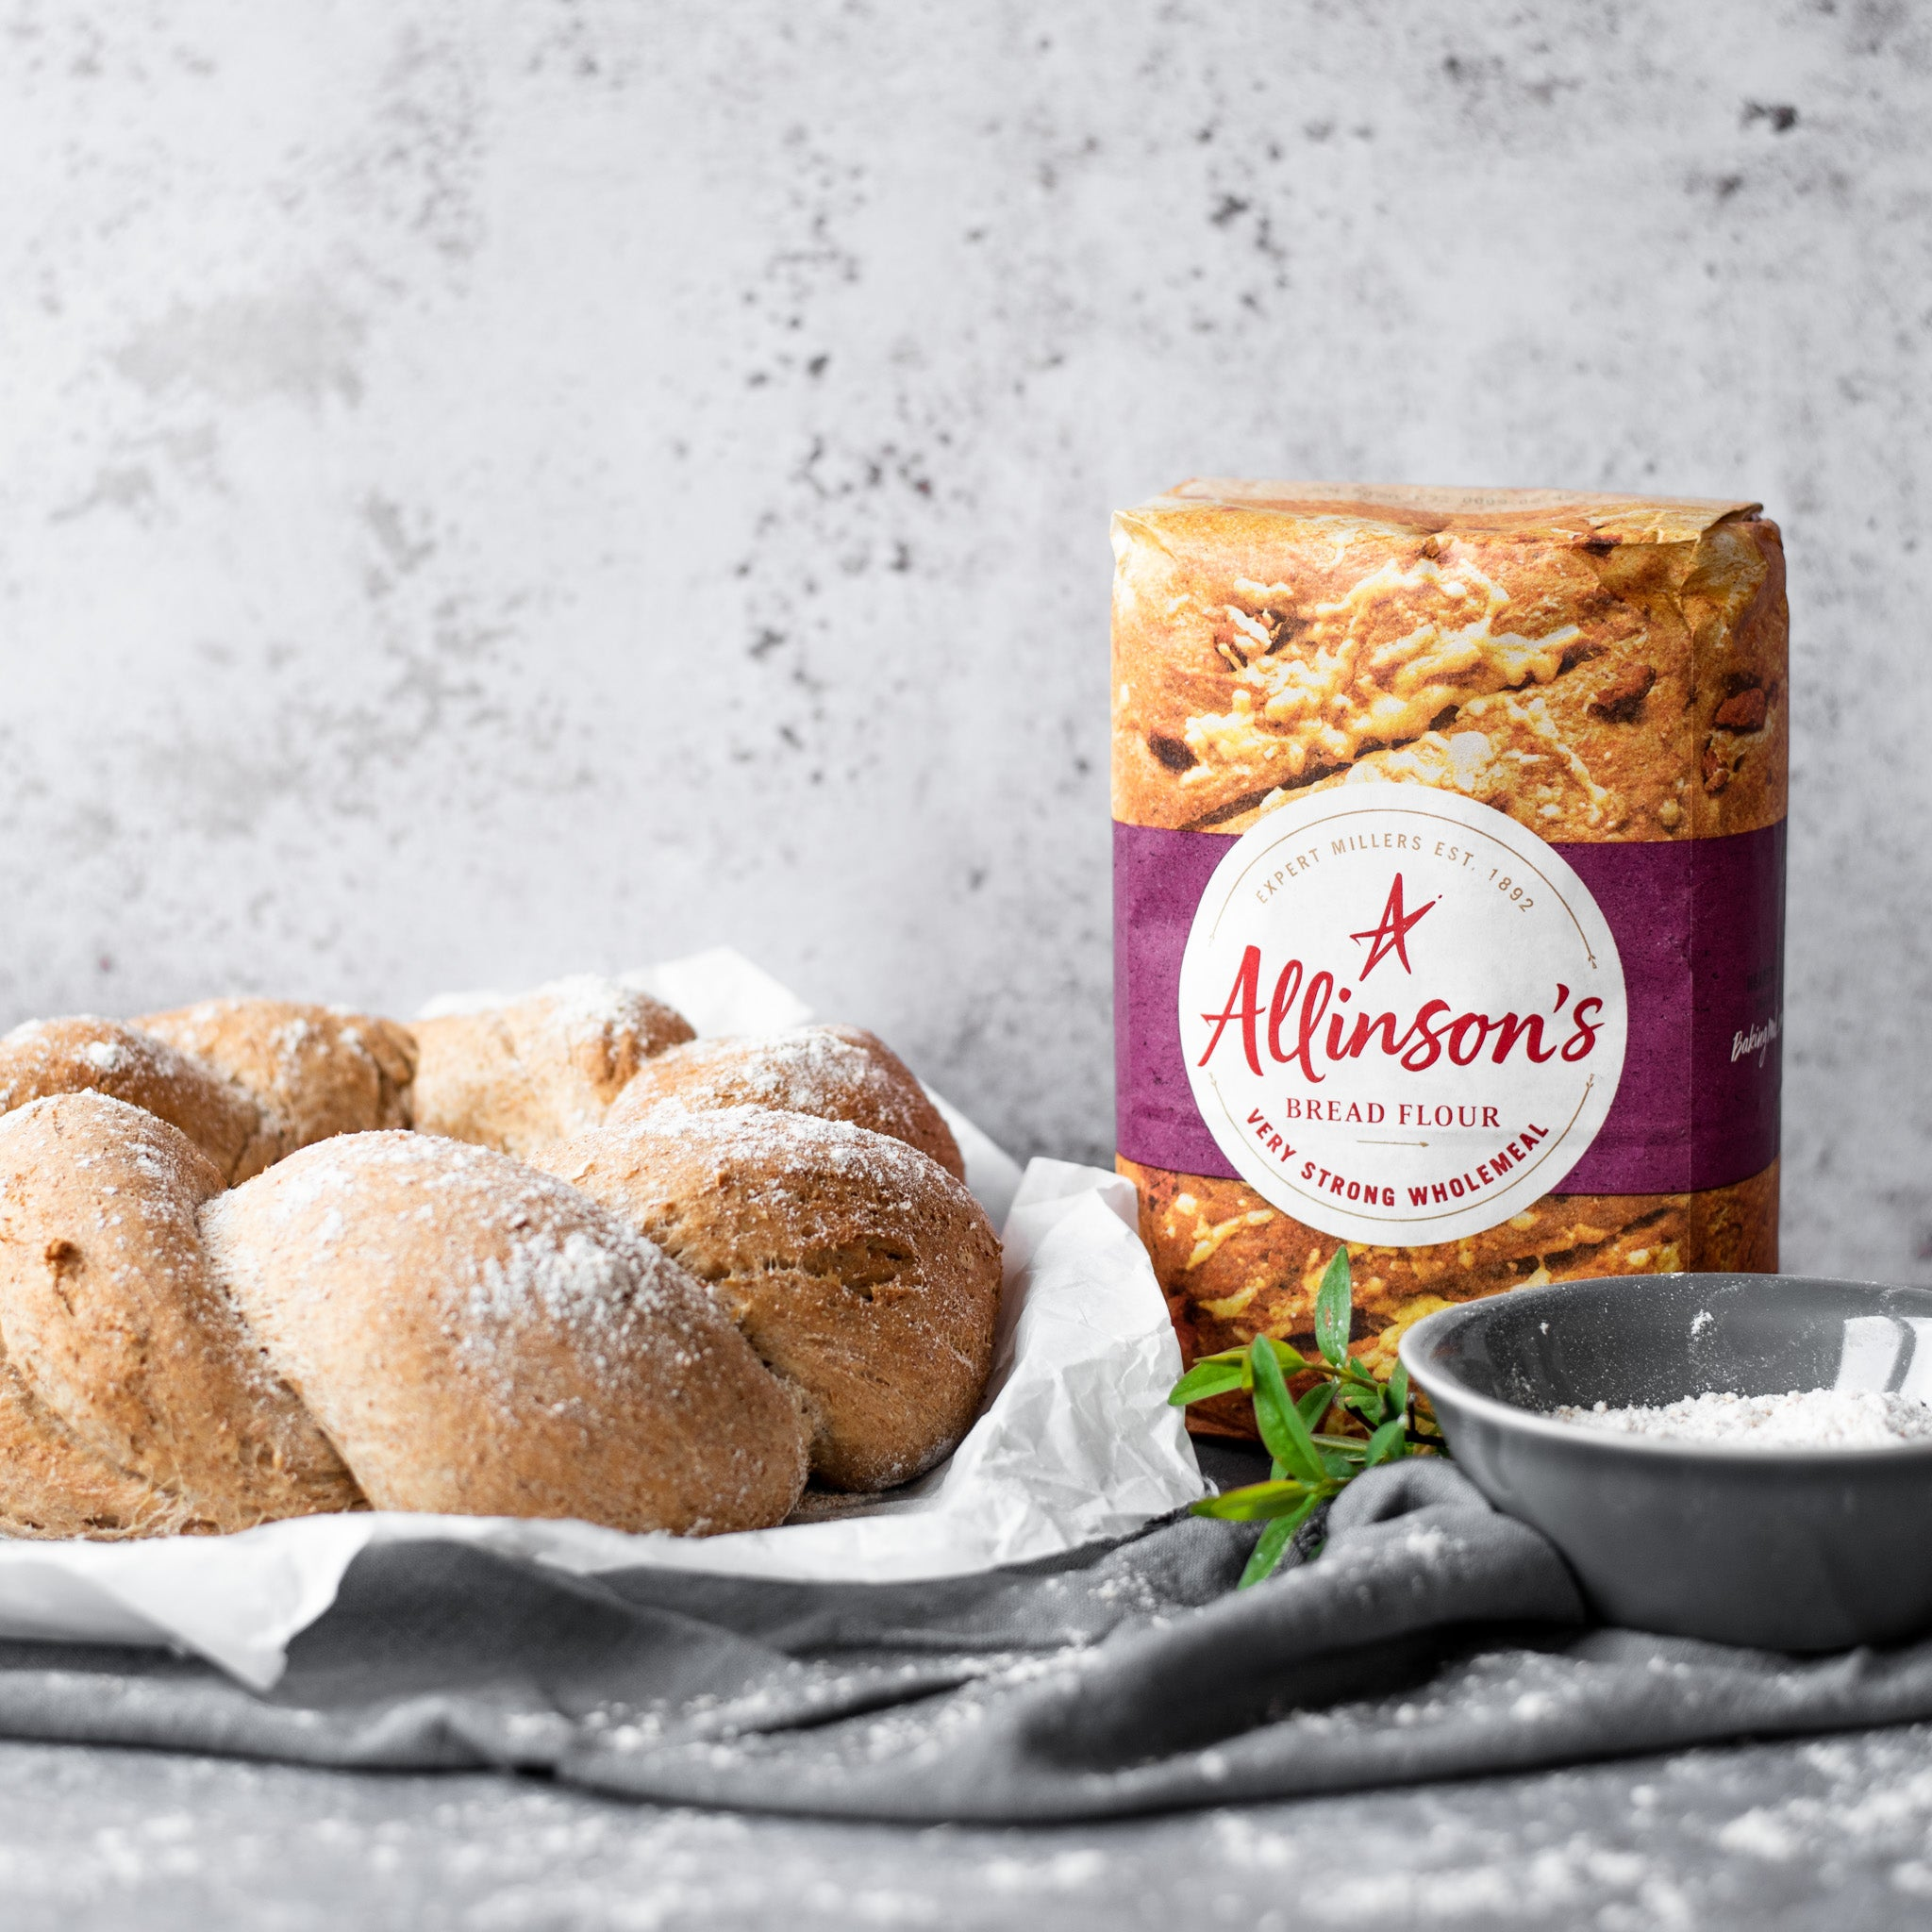 Allinsons-Wholemeal-Wreath-1-1-Baking-Mad-3.jpg